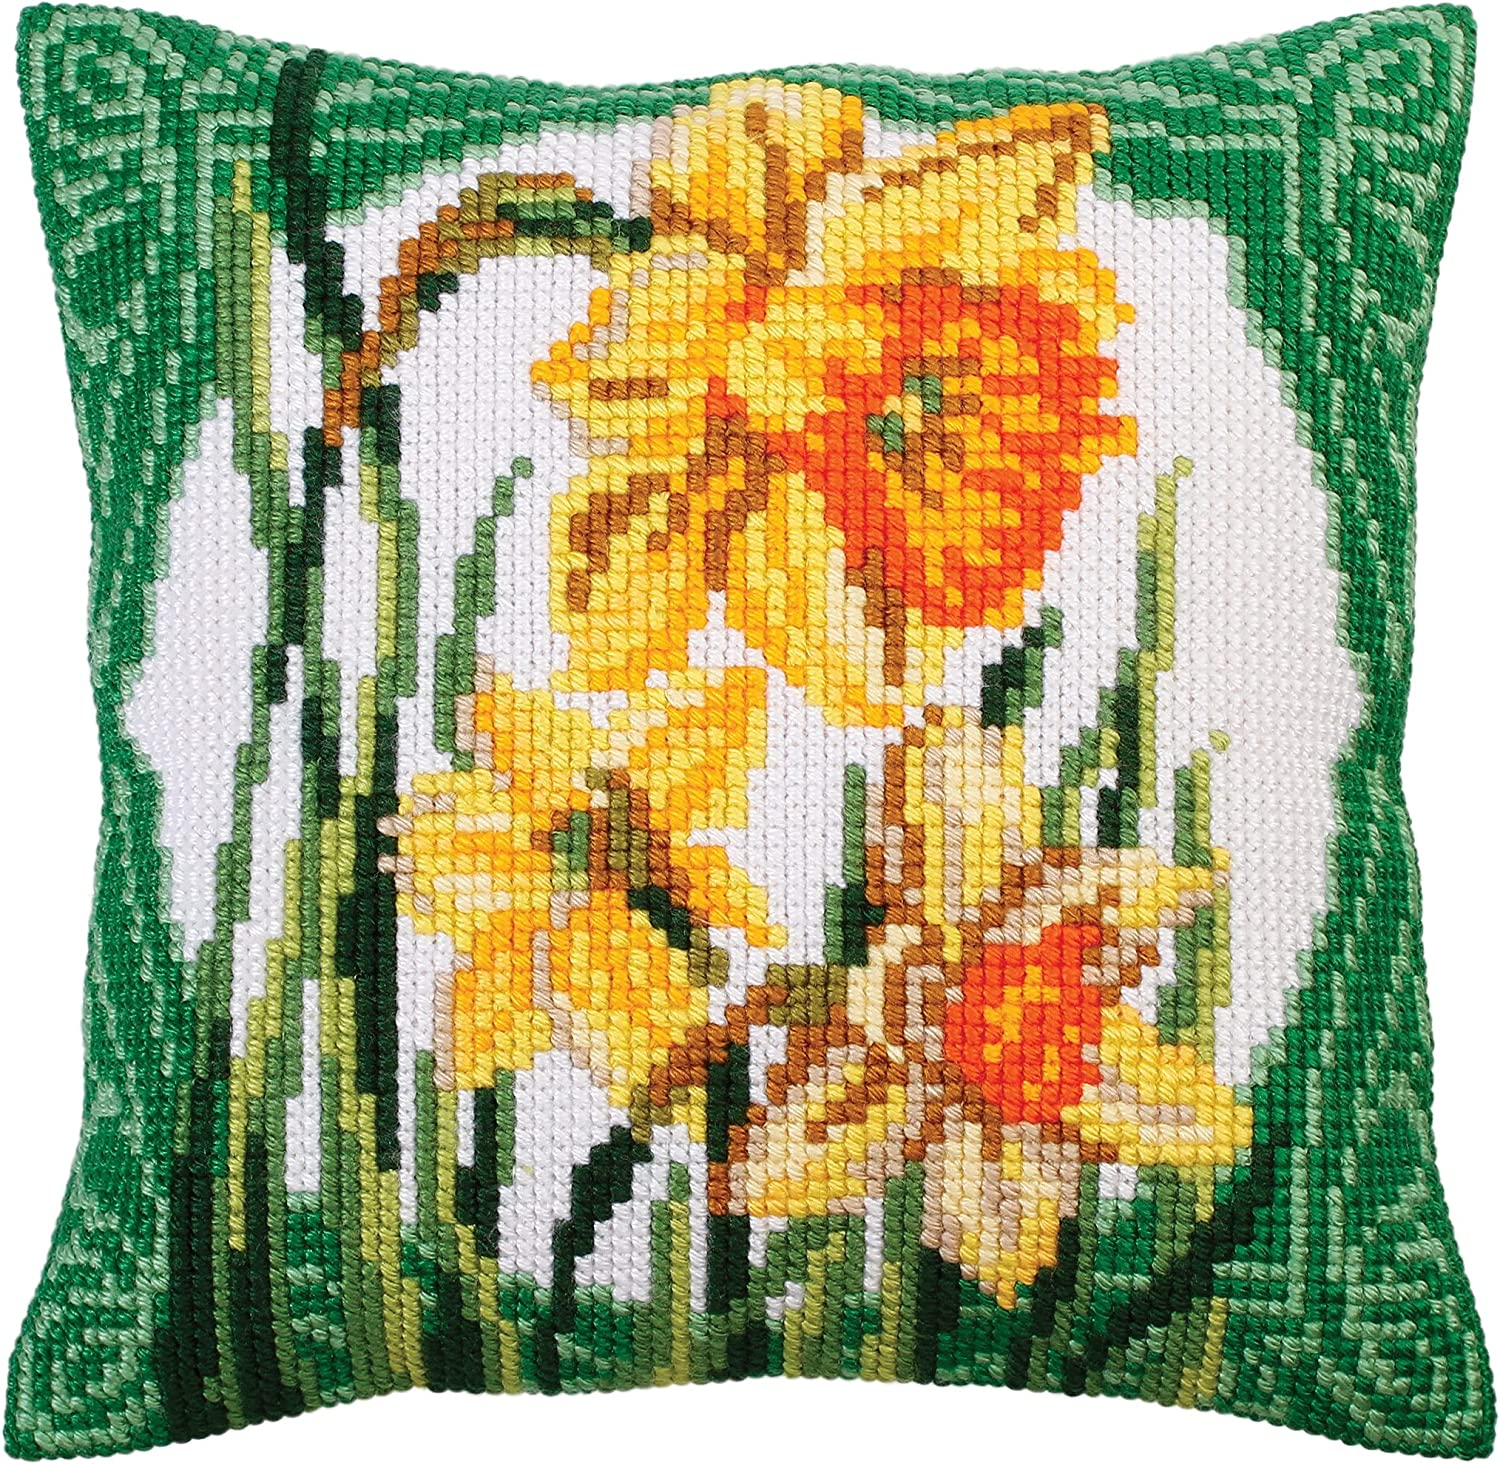 Collection D'Art Narcissus Needlepoint 40 Max 67% OFF KIT New color x 40cm